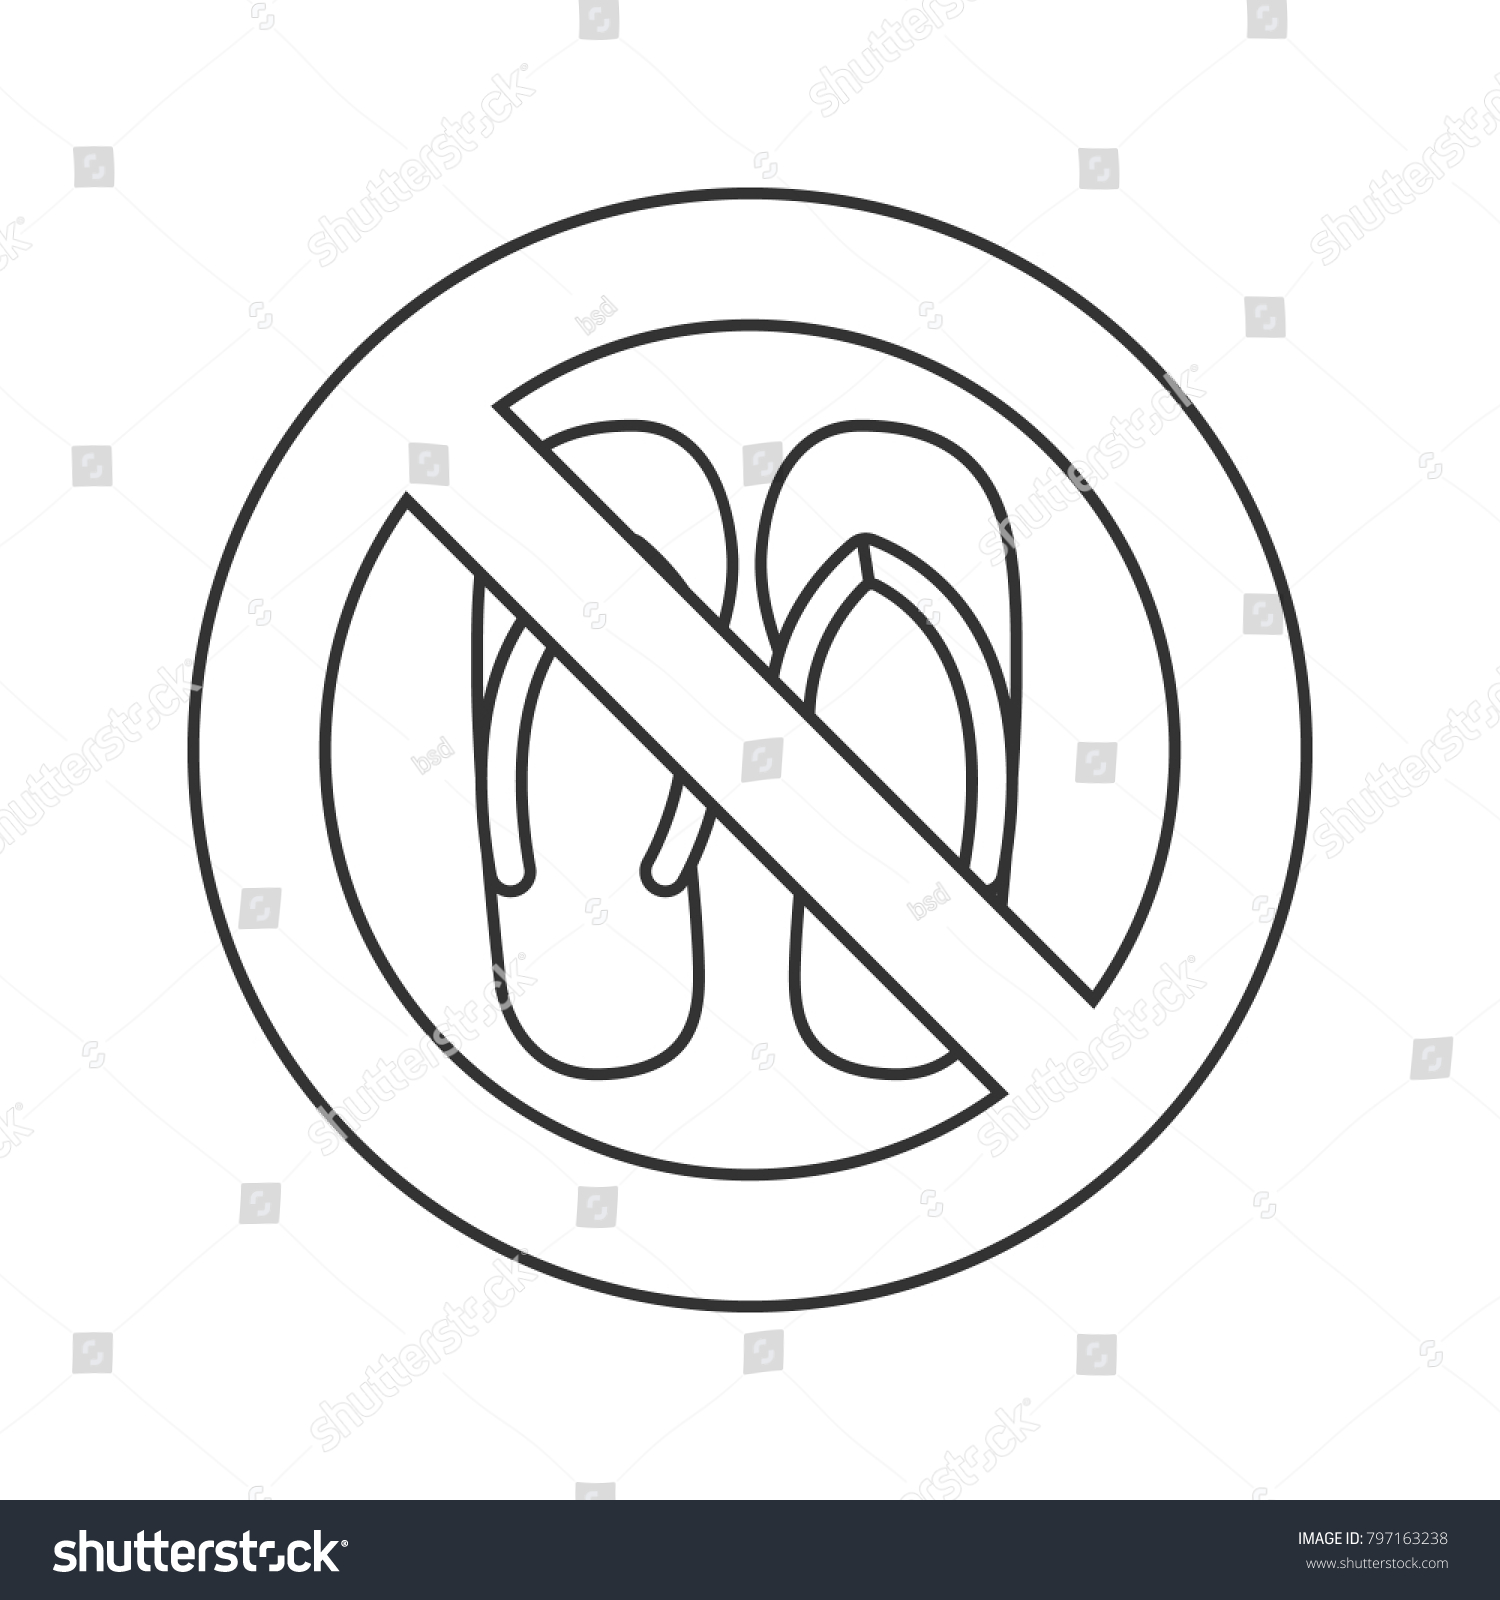 3338c931252fb Forbidden sign with slippers linear icon. Thin line illustration. No sandals